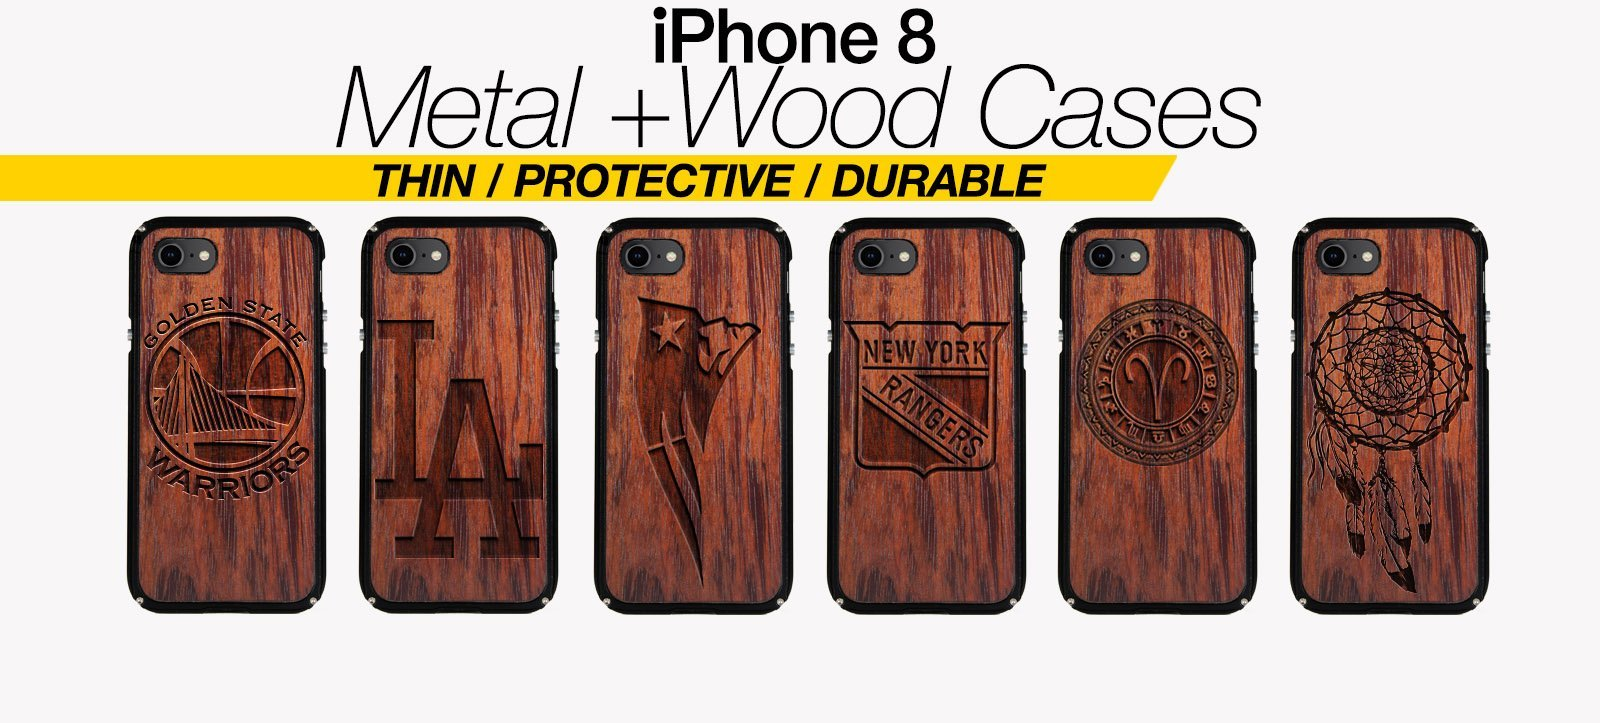 Wood And Metal iPhone 8 Cases Best Wood And Metal iPhone 8 Covers Thin Protective Eco Friendly